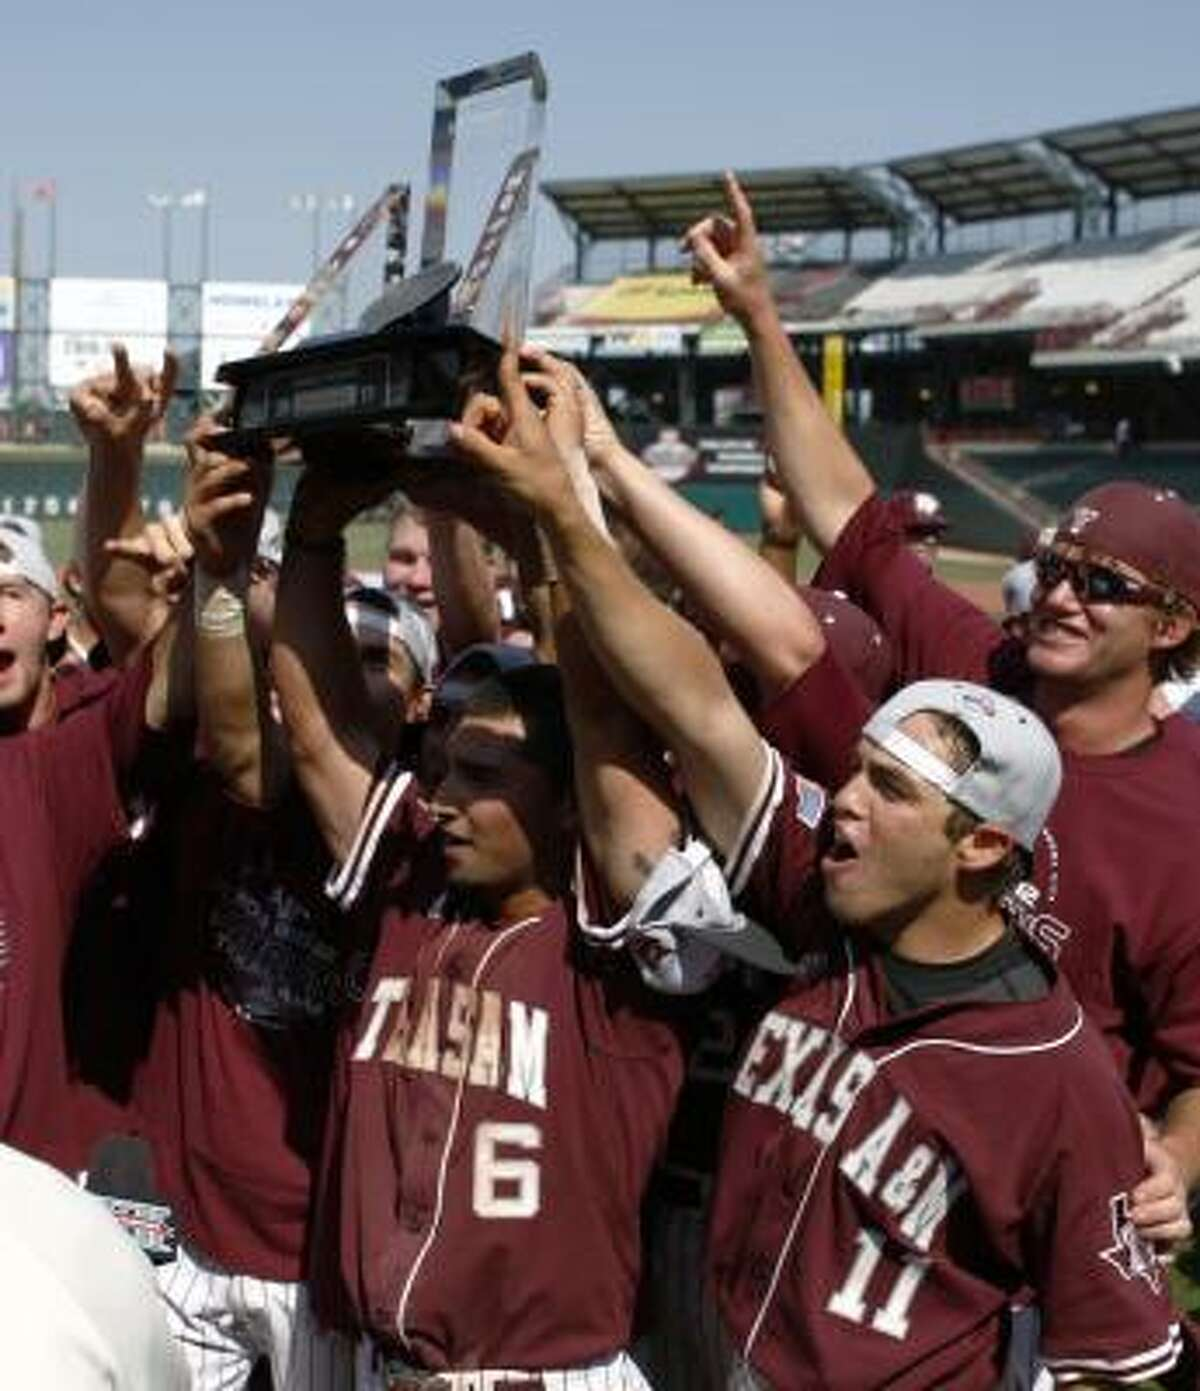 A&M's Andrew Collazo, center, holds the Big 12 Trophy and celebrates with his team after defeating Missouri in the Big 12 tournament title game on Sunday in Oklahoma City.